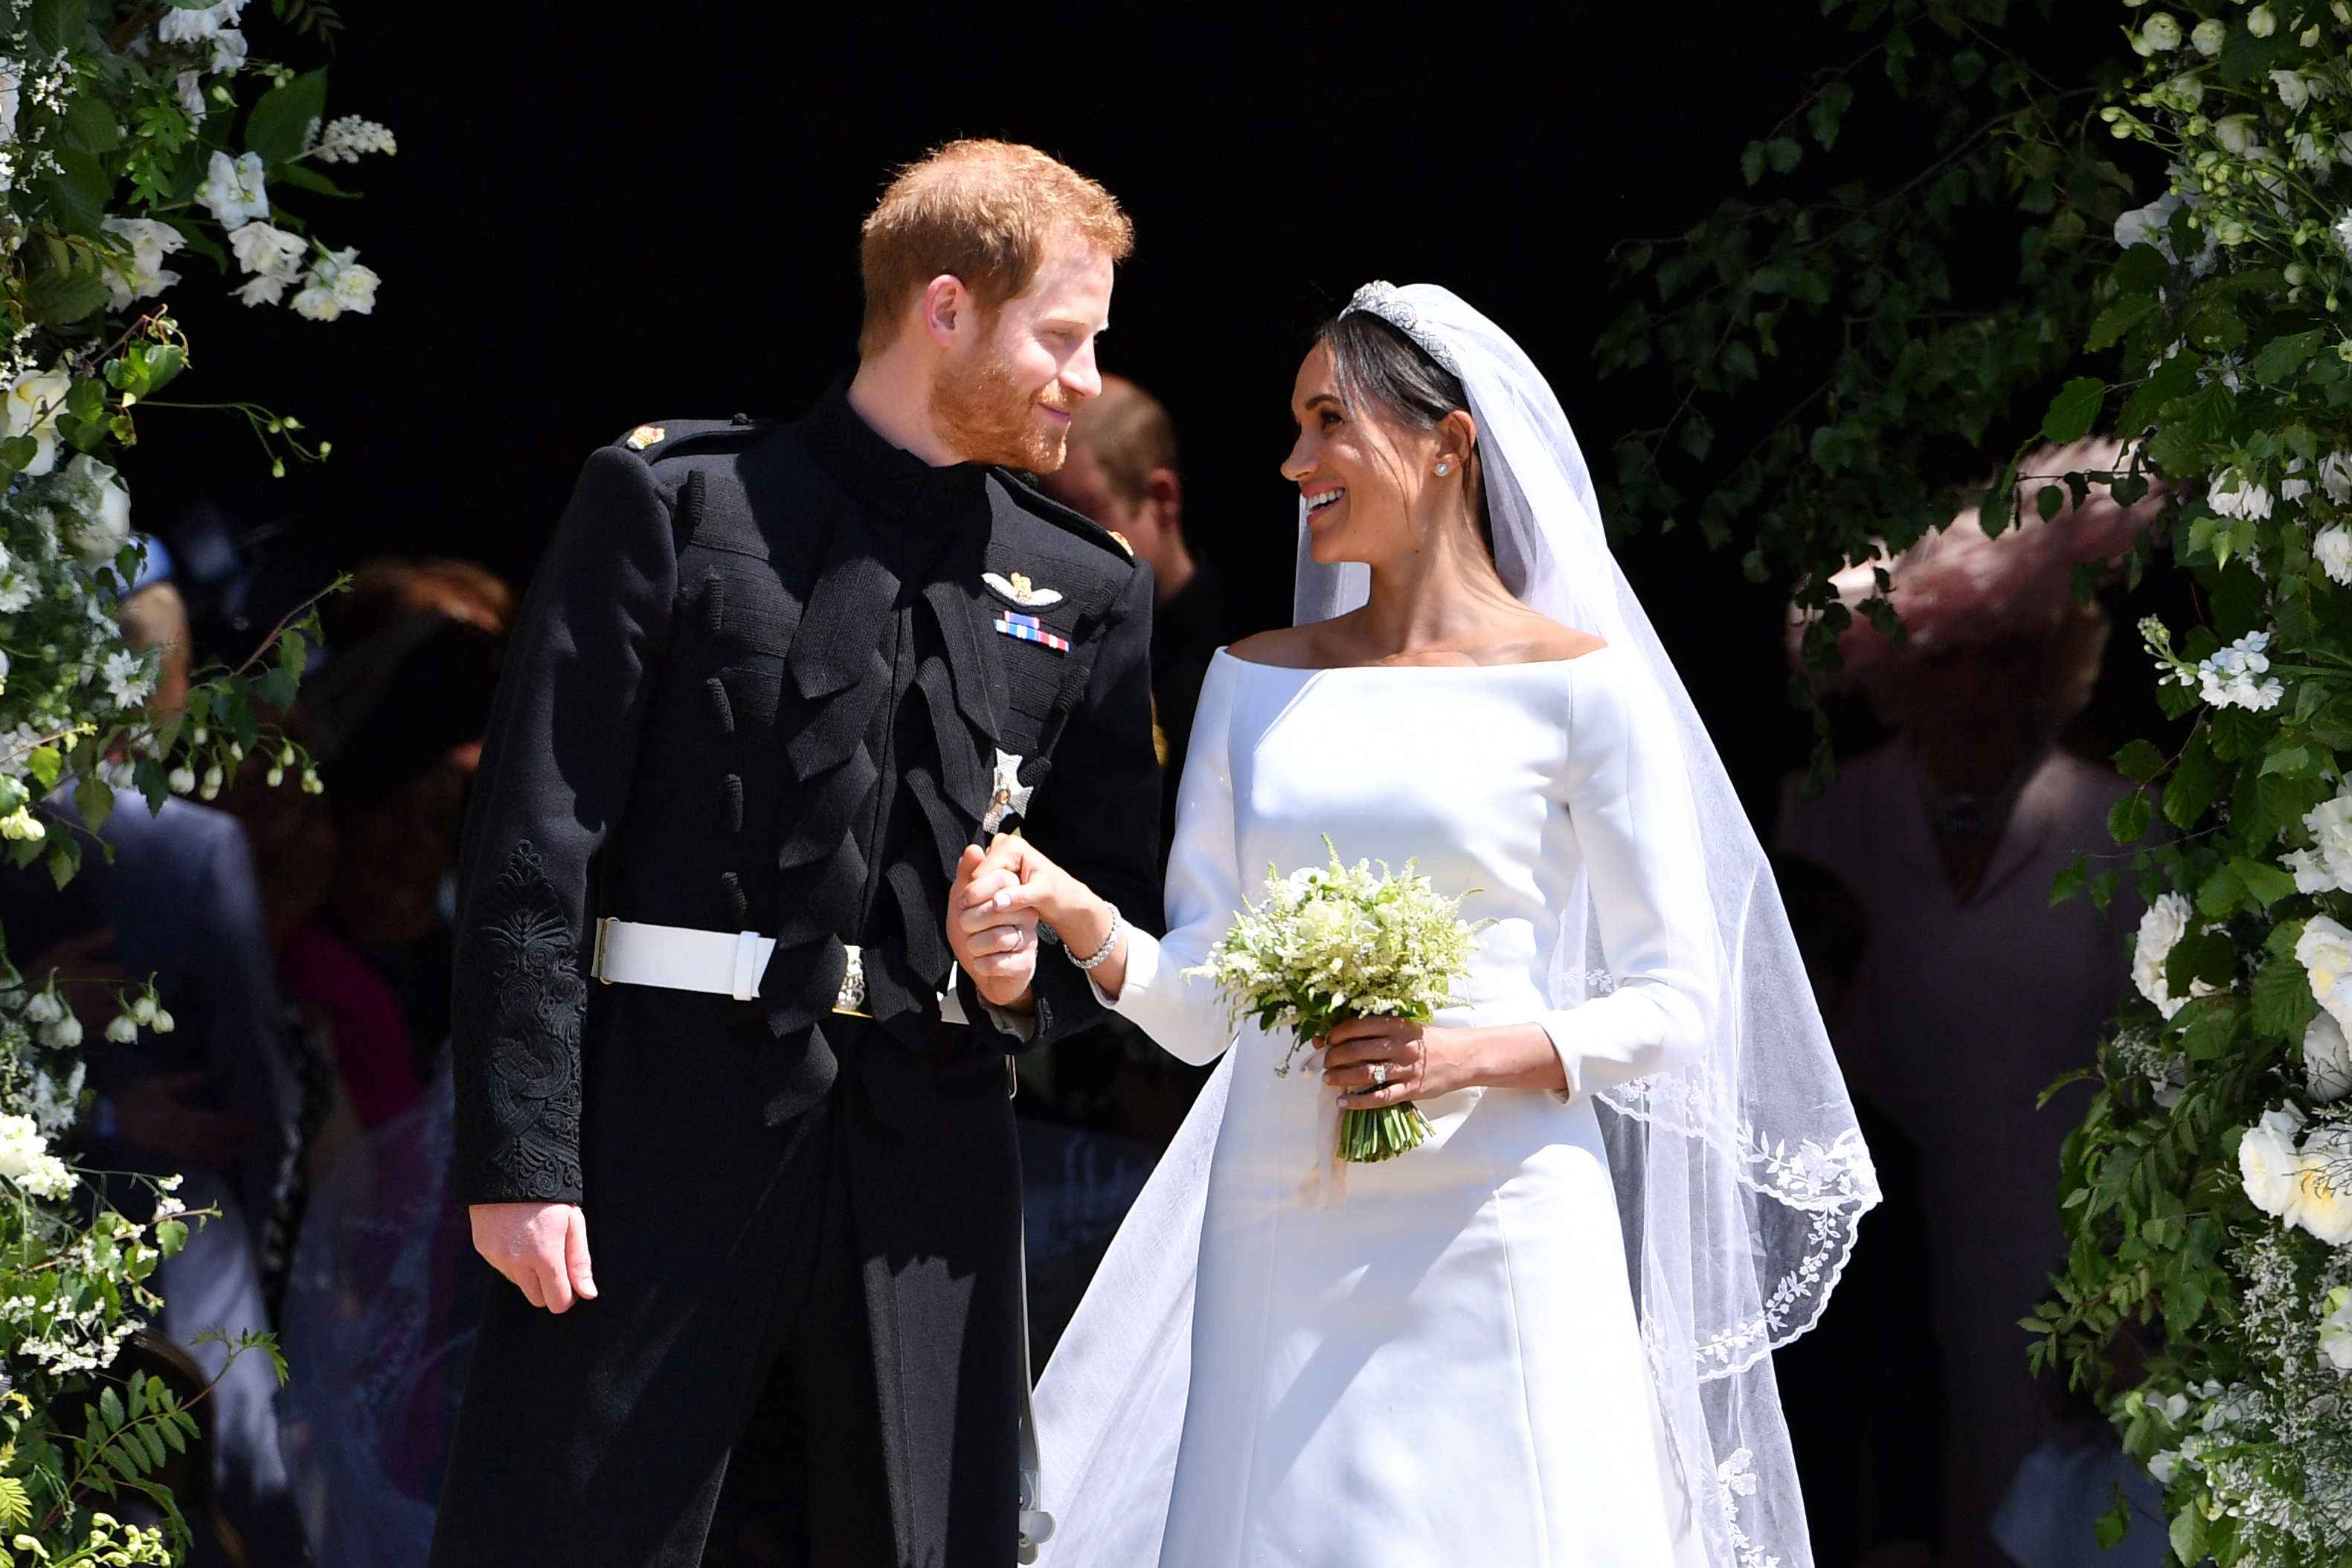 Prince Harry and Meghan Didn't Actually Get Married in a Secret Ceremony